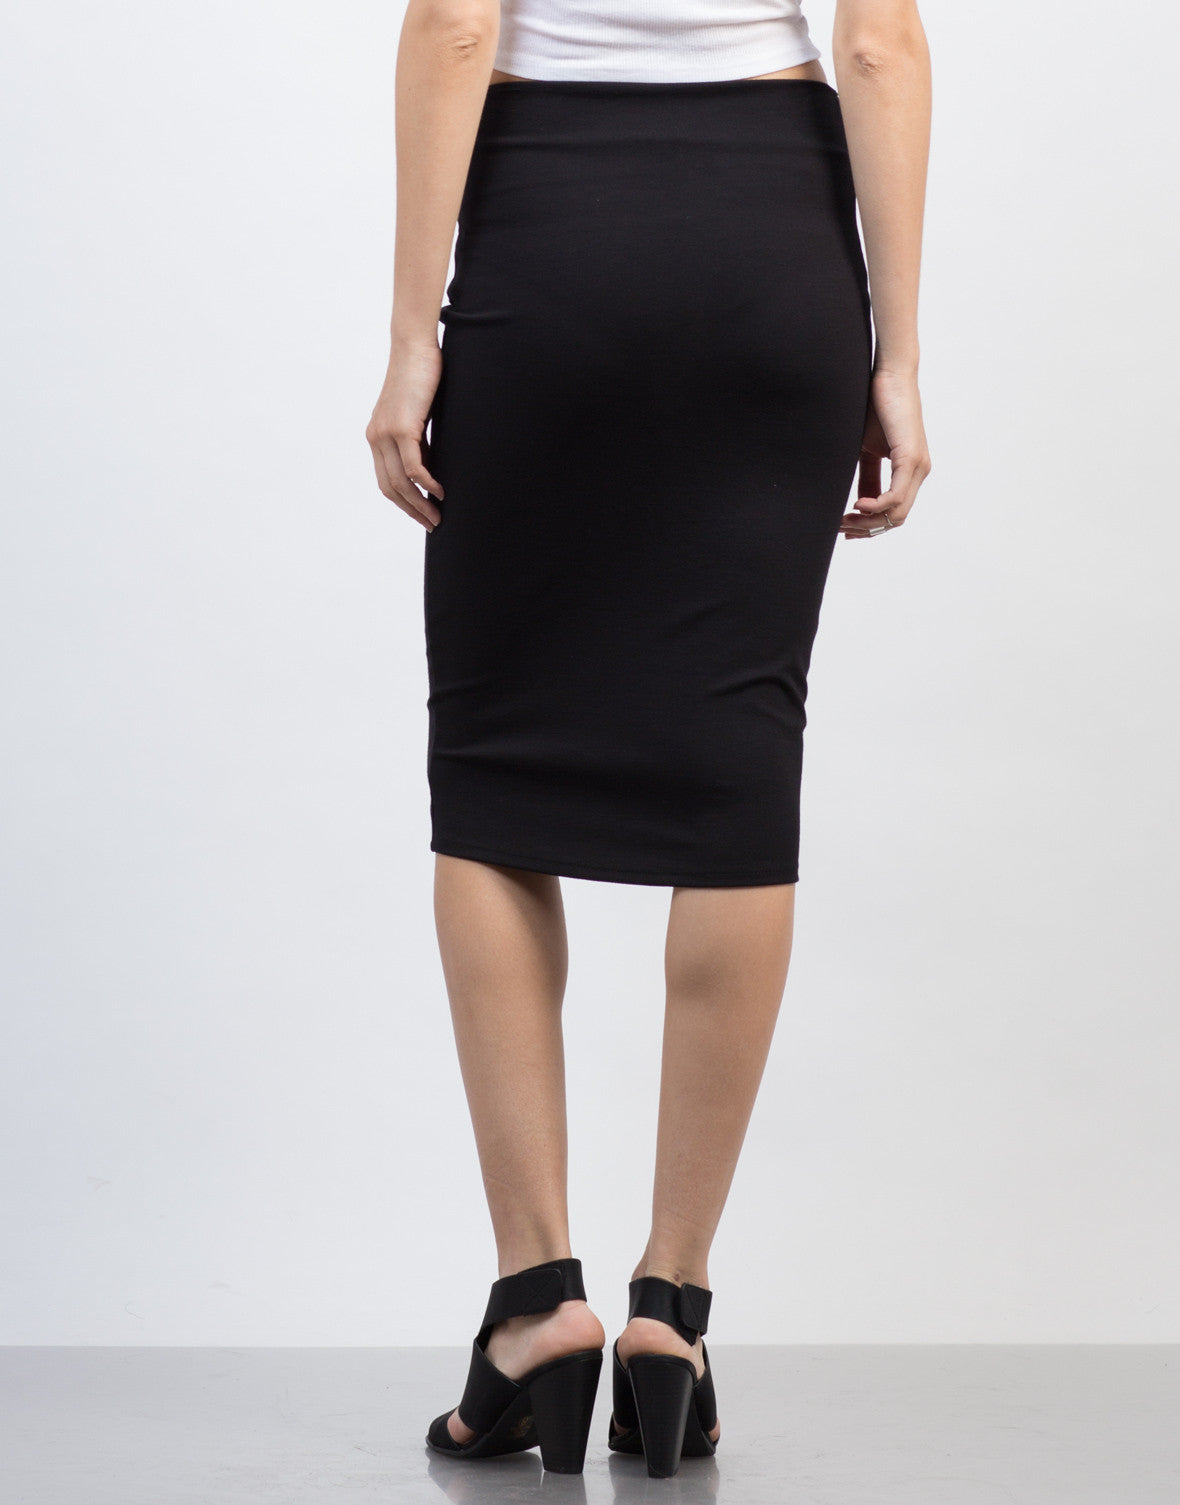 Back View of Bodycon Midi Skirt